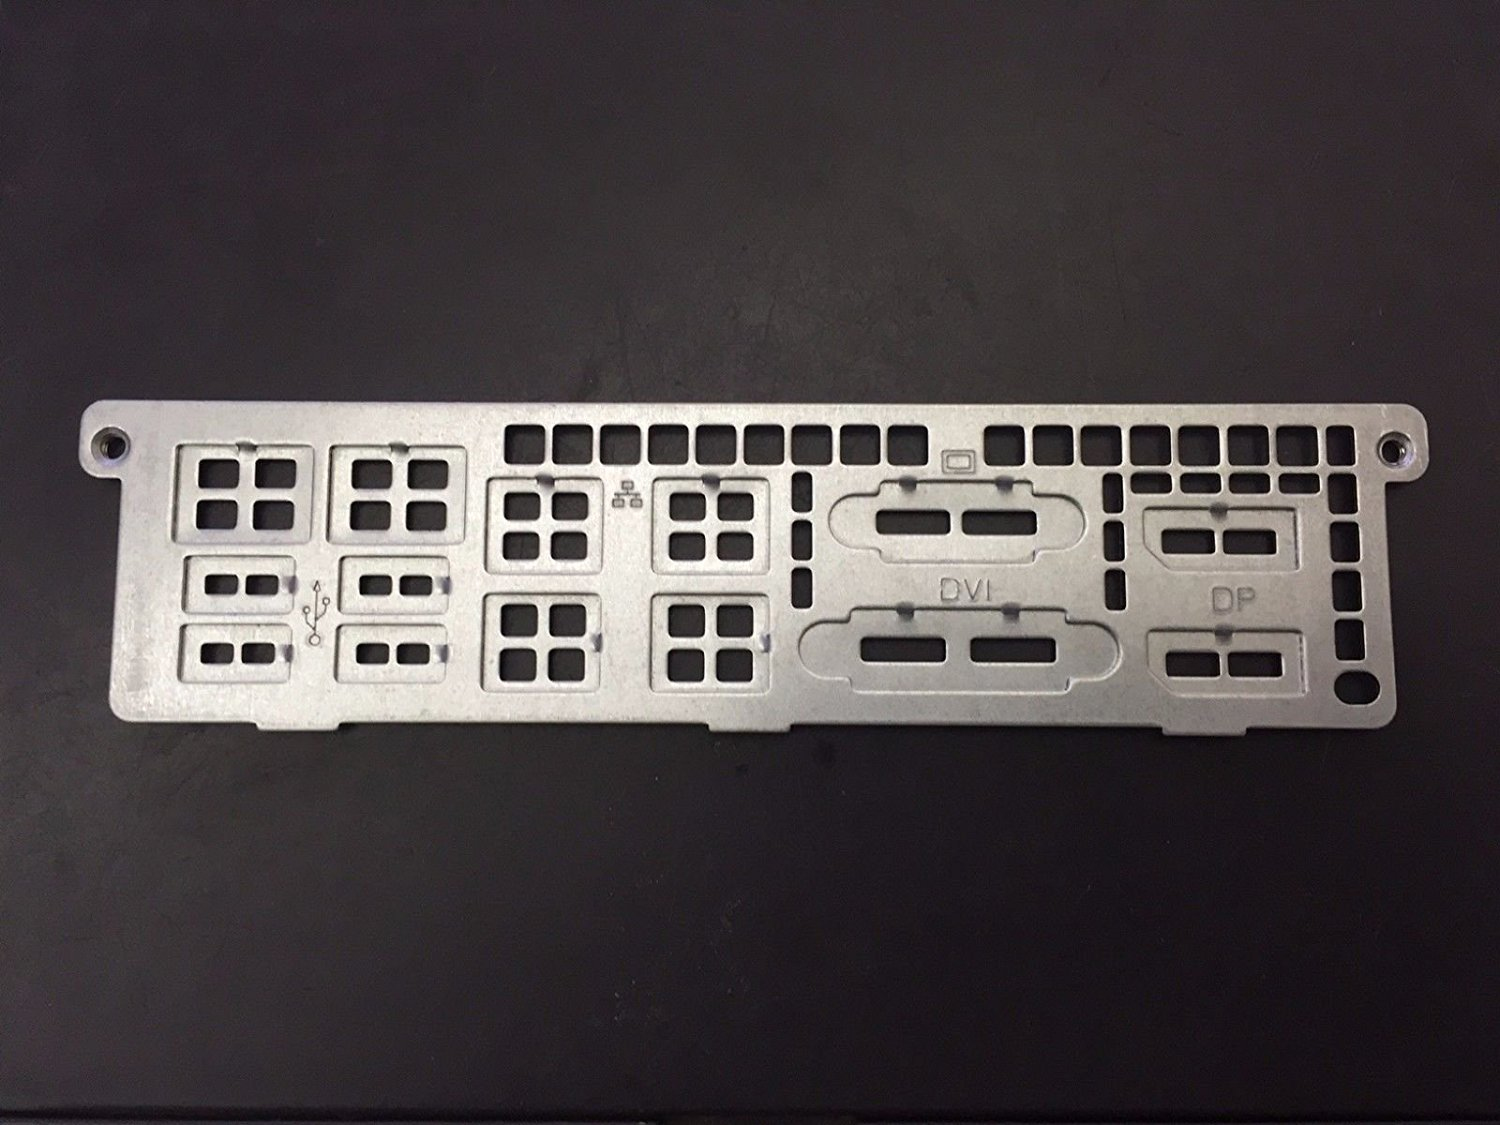 SUPERMICRO MCP-260-00094-0N RACK I/O SHIELD COMPUTER CASE PART